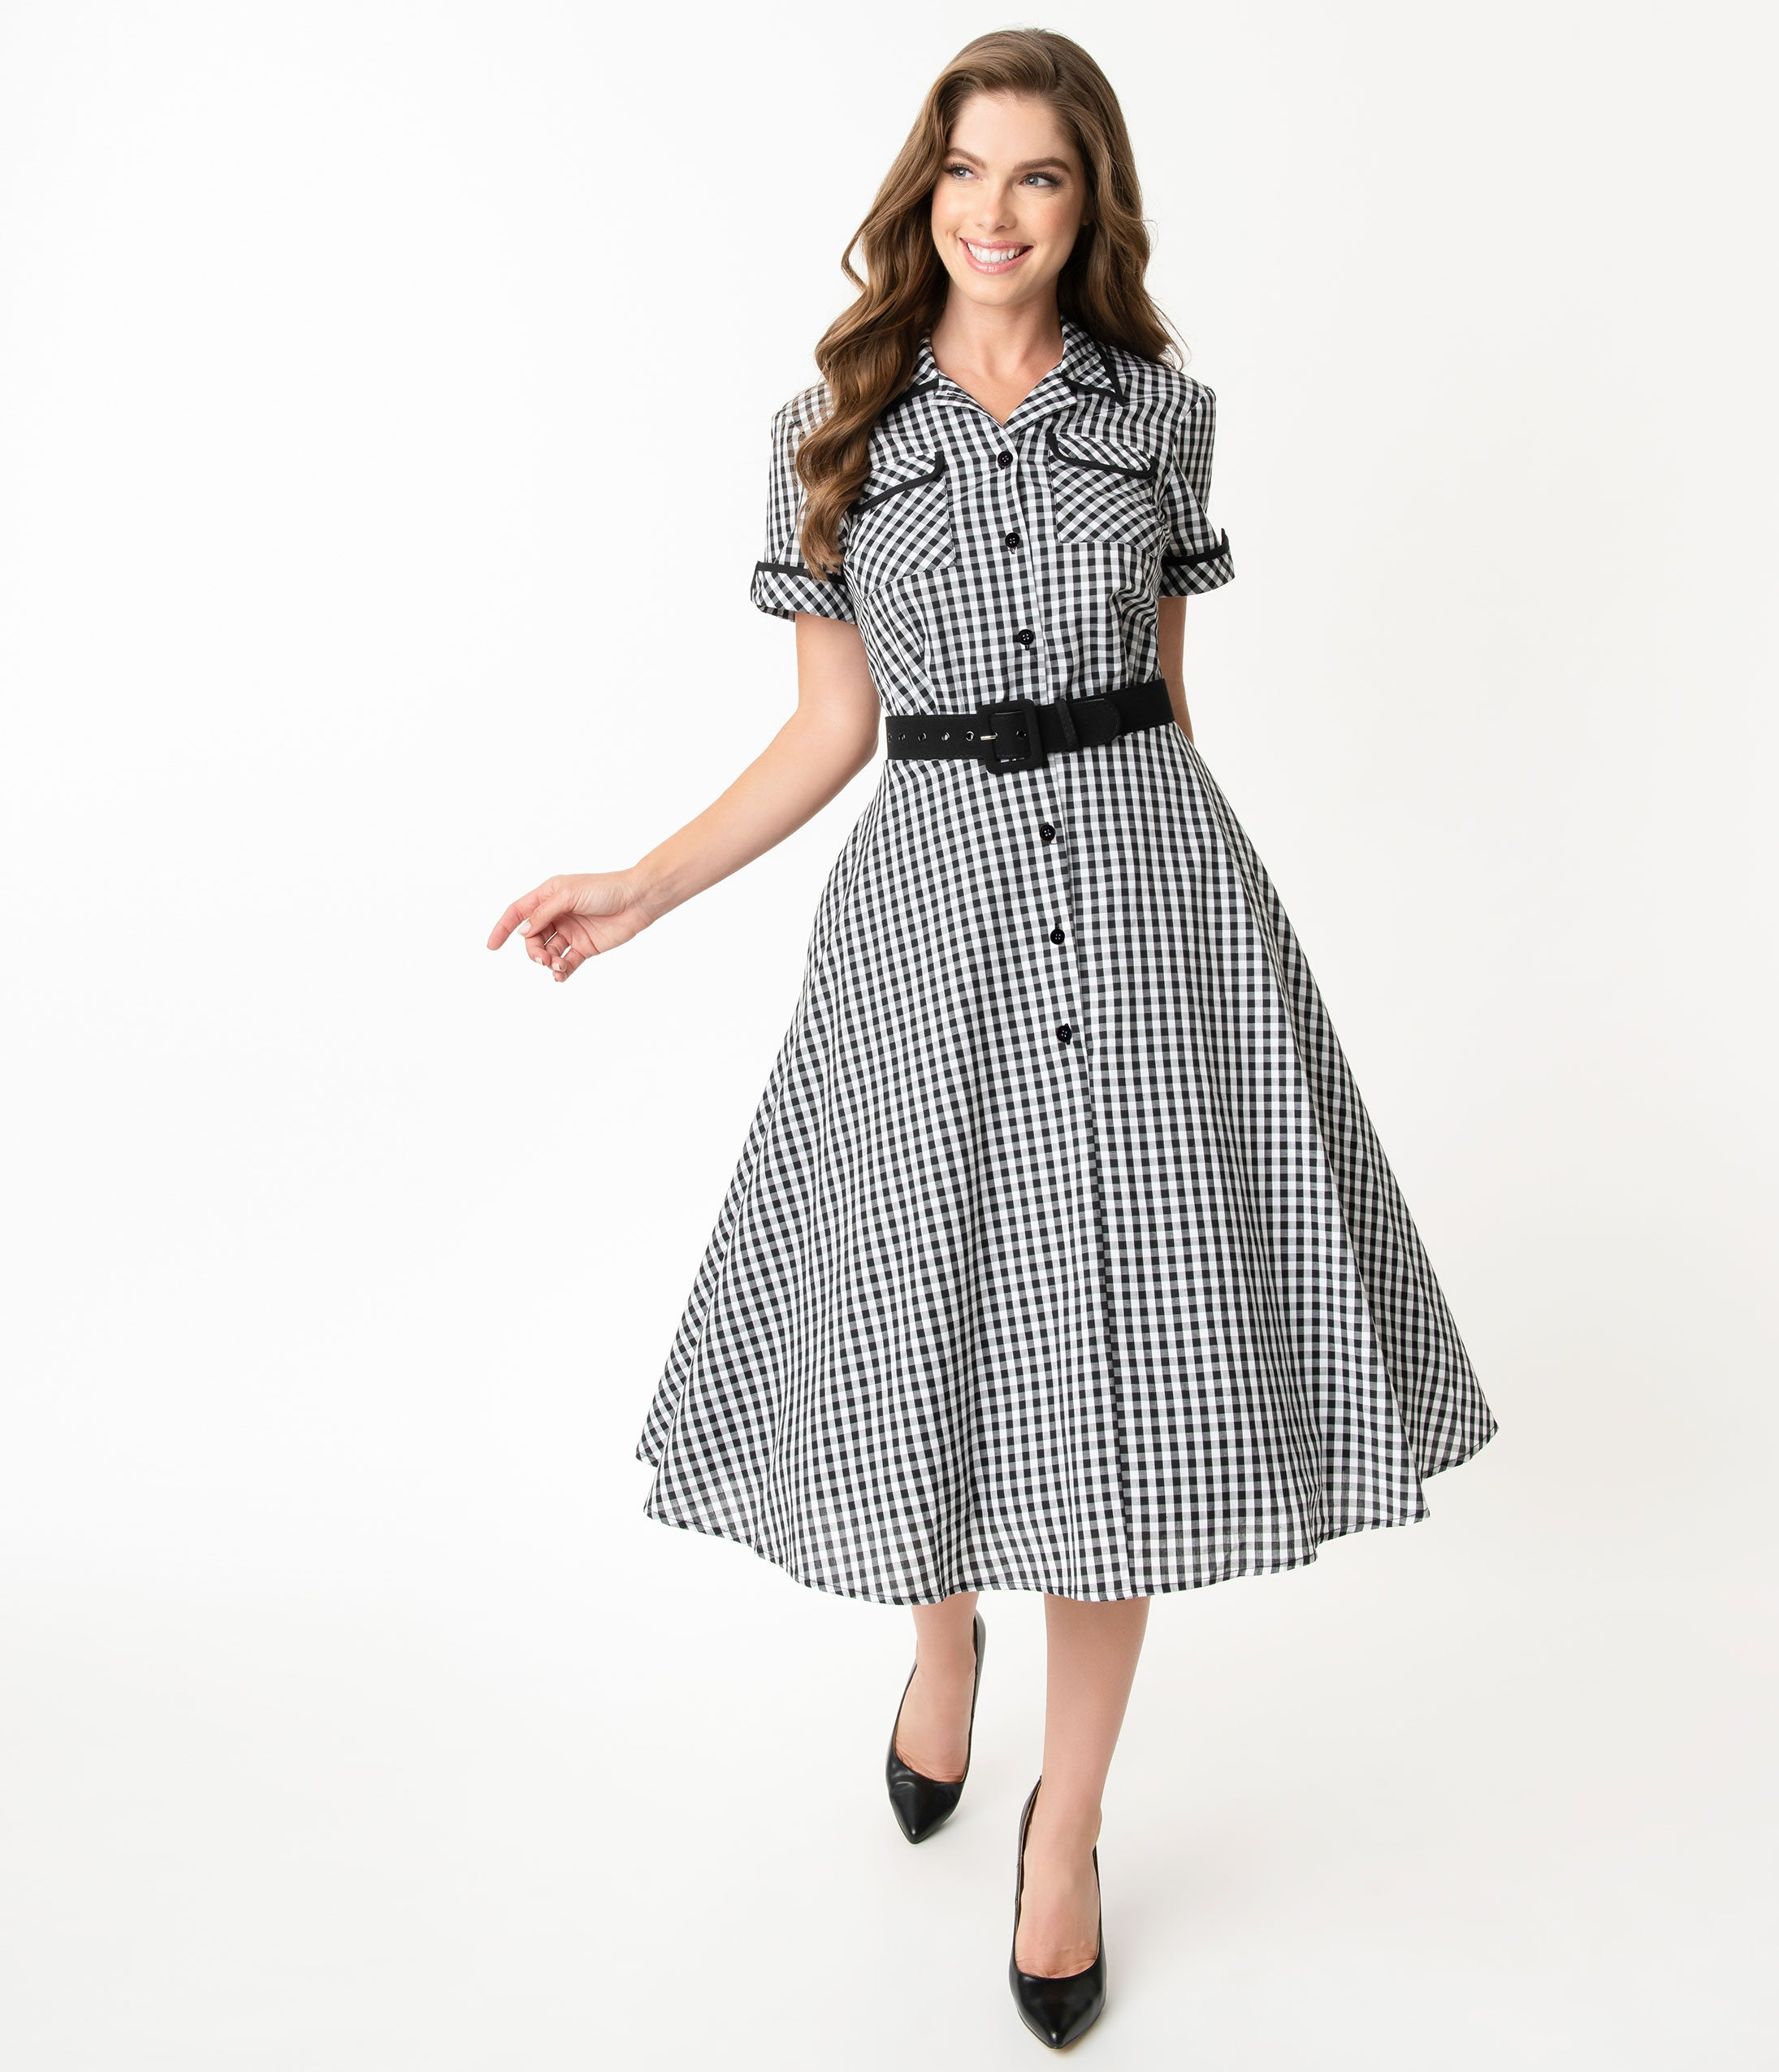 Vintage Shirtwaist Dress History I Love Lucy X Unique Vintage Black  White Gingham Ethel Swing Dress $98.00 AT vintagedancer.com